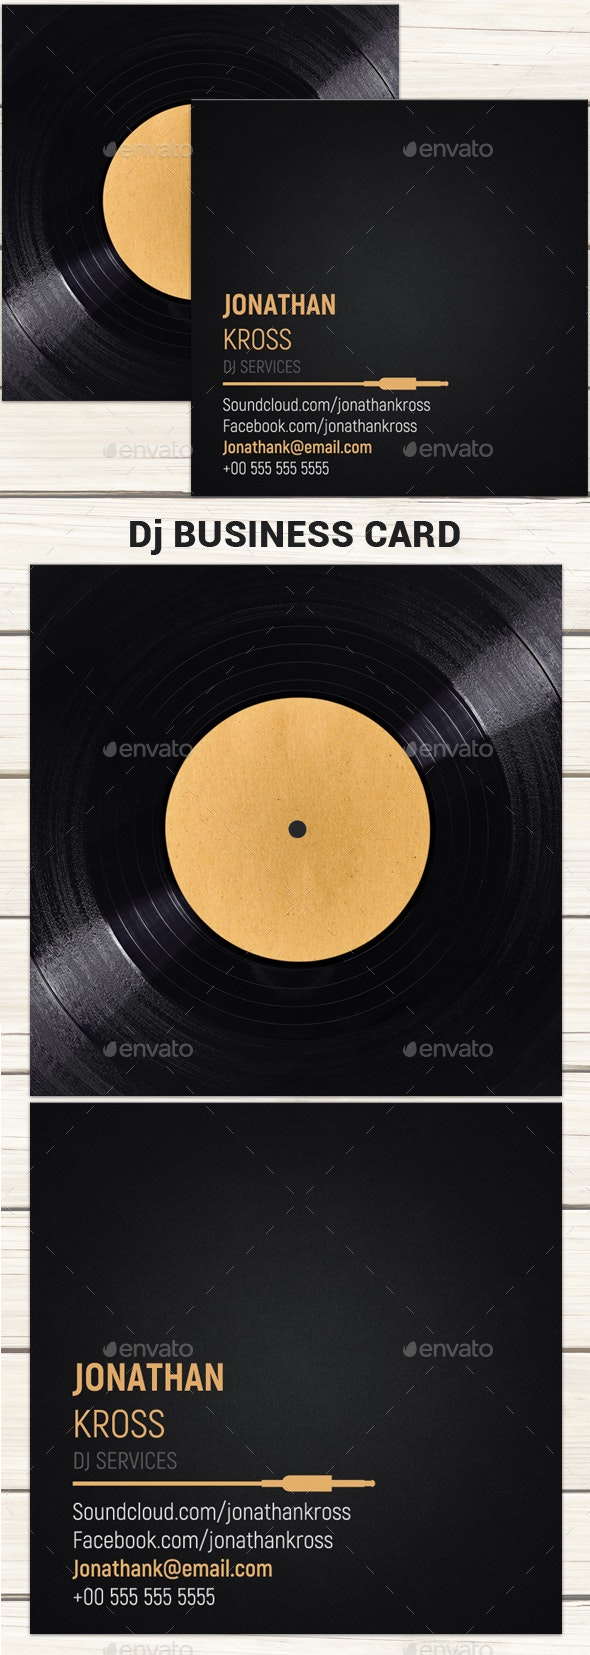 Dj Business Card Template - Business Cards Print Templates